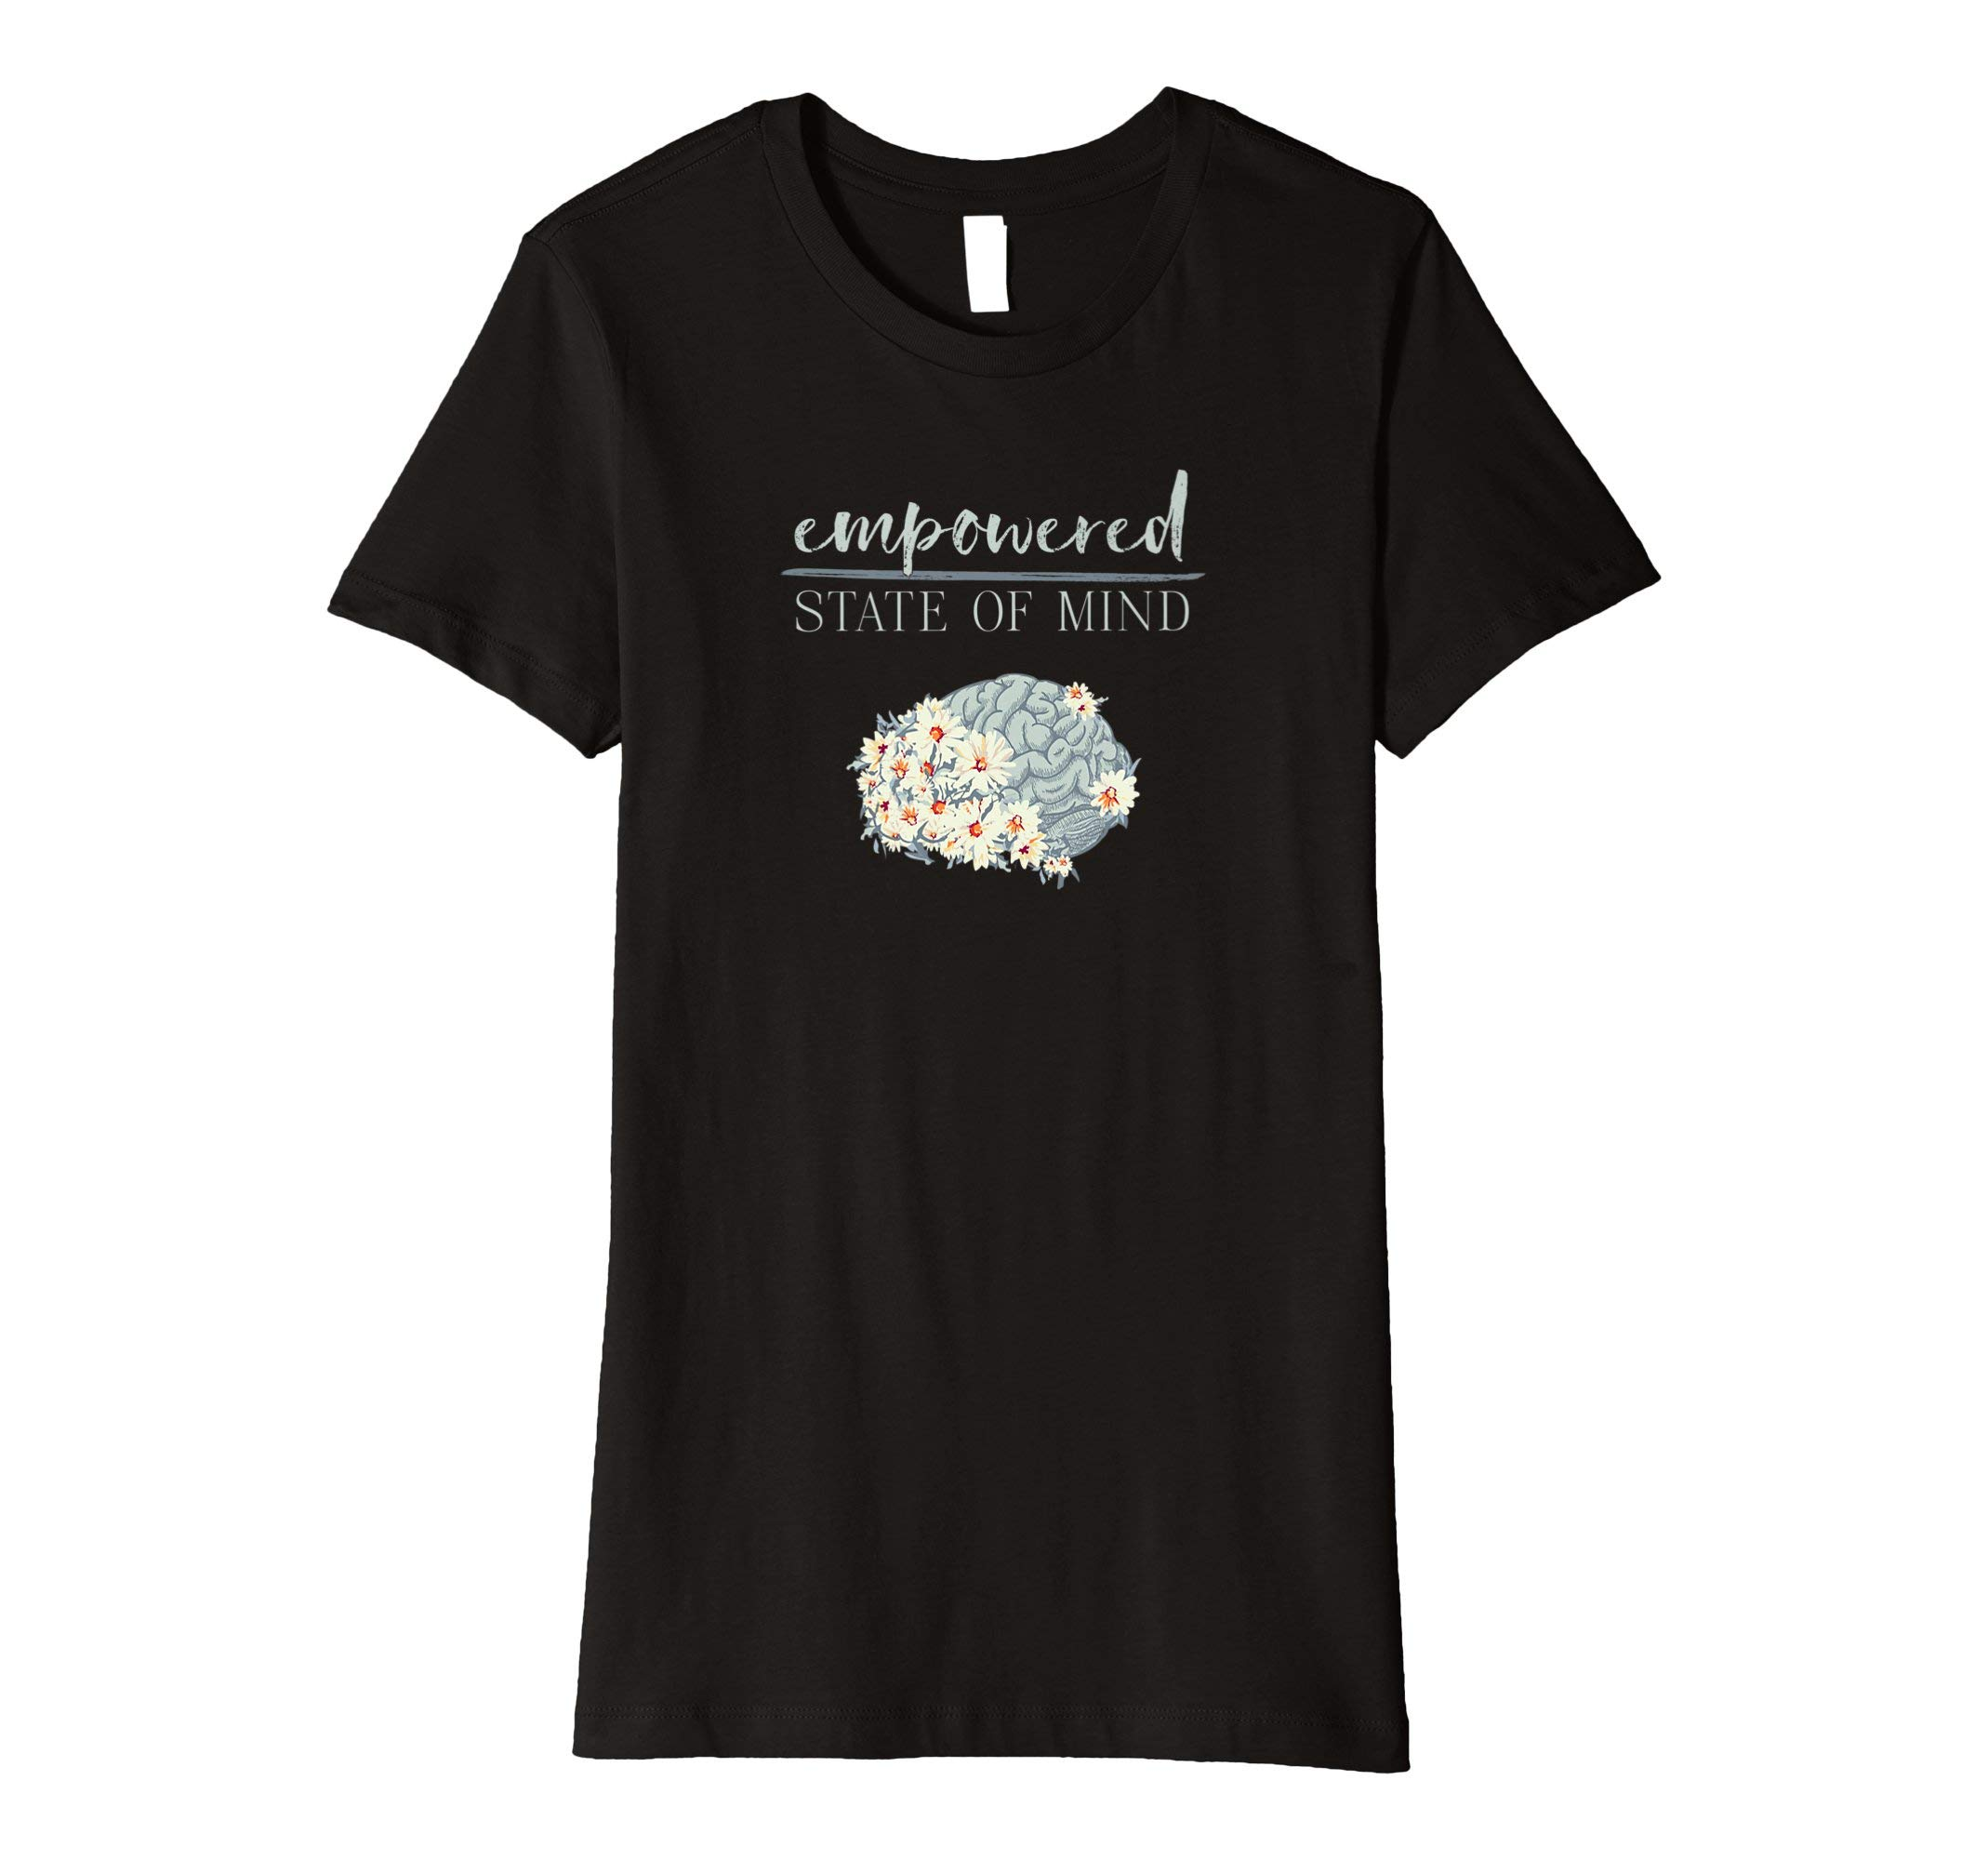 Empowered State of Mind T-Shirt by Live Purposefully (Image #1)